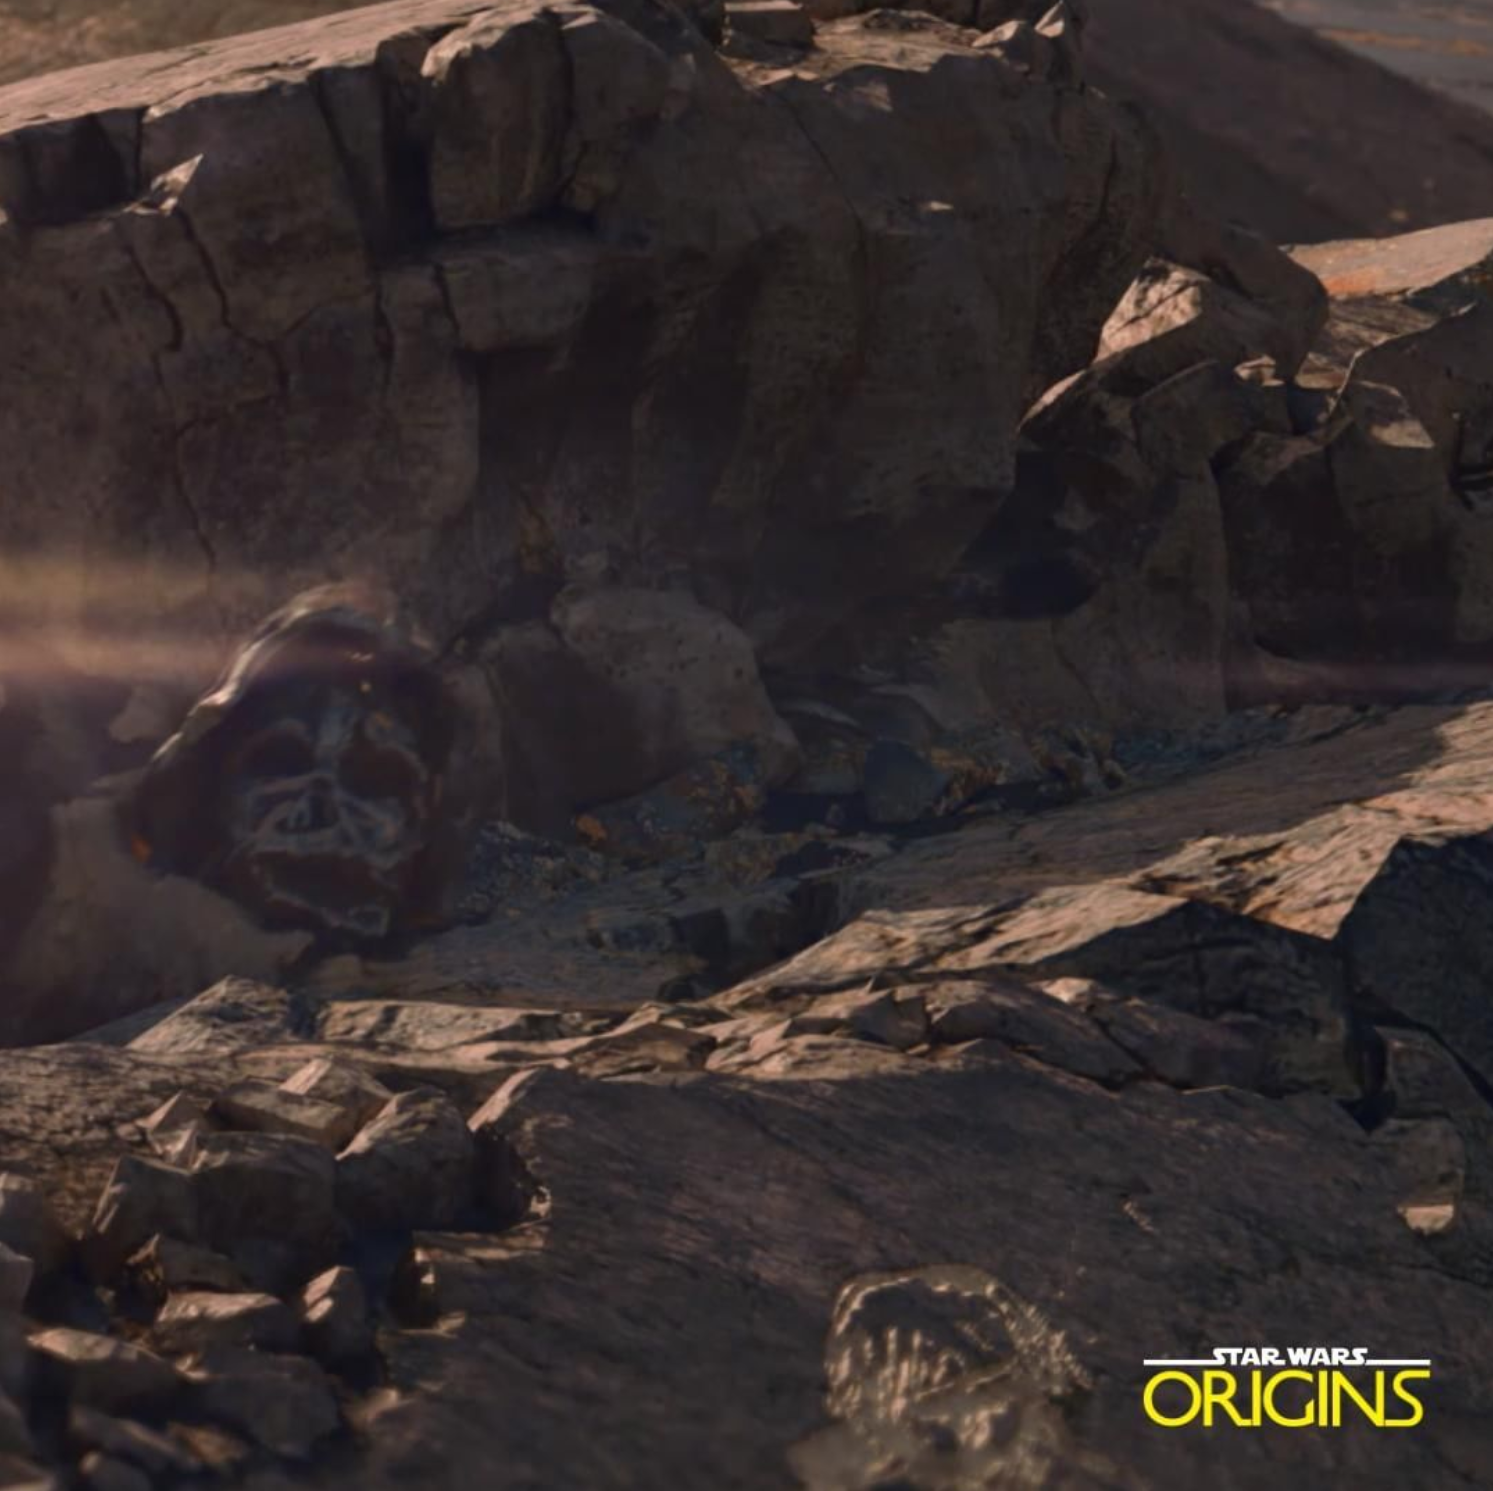 Star Wars: Origins Ground VFX